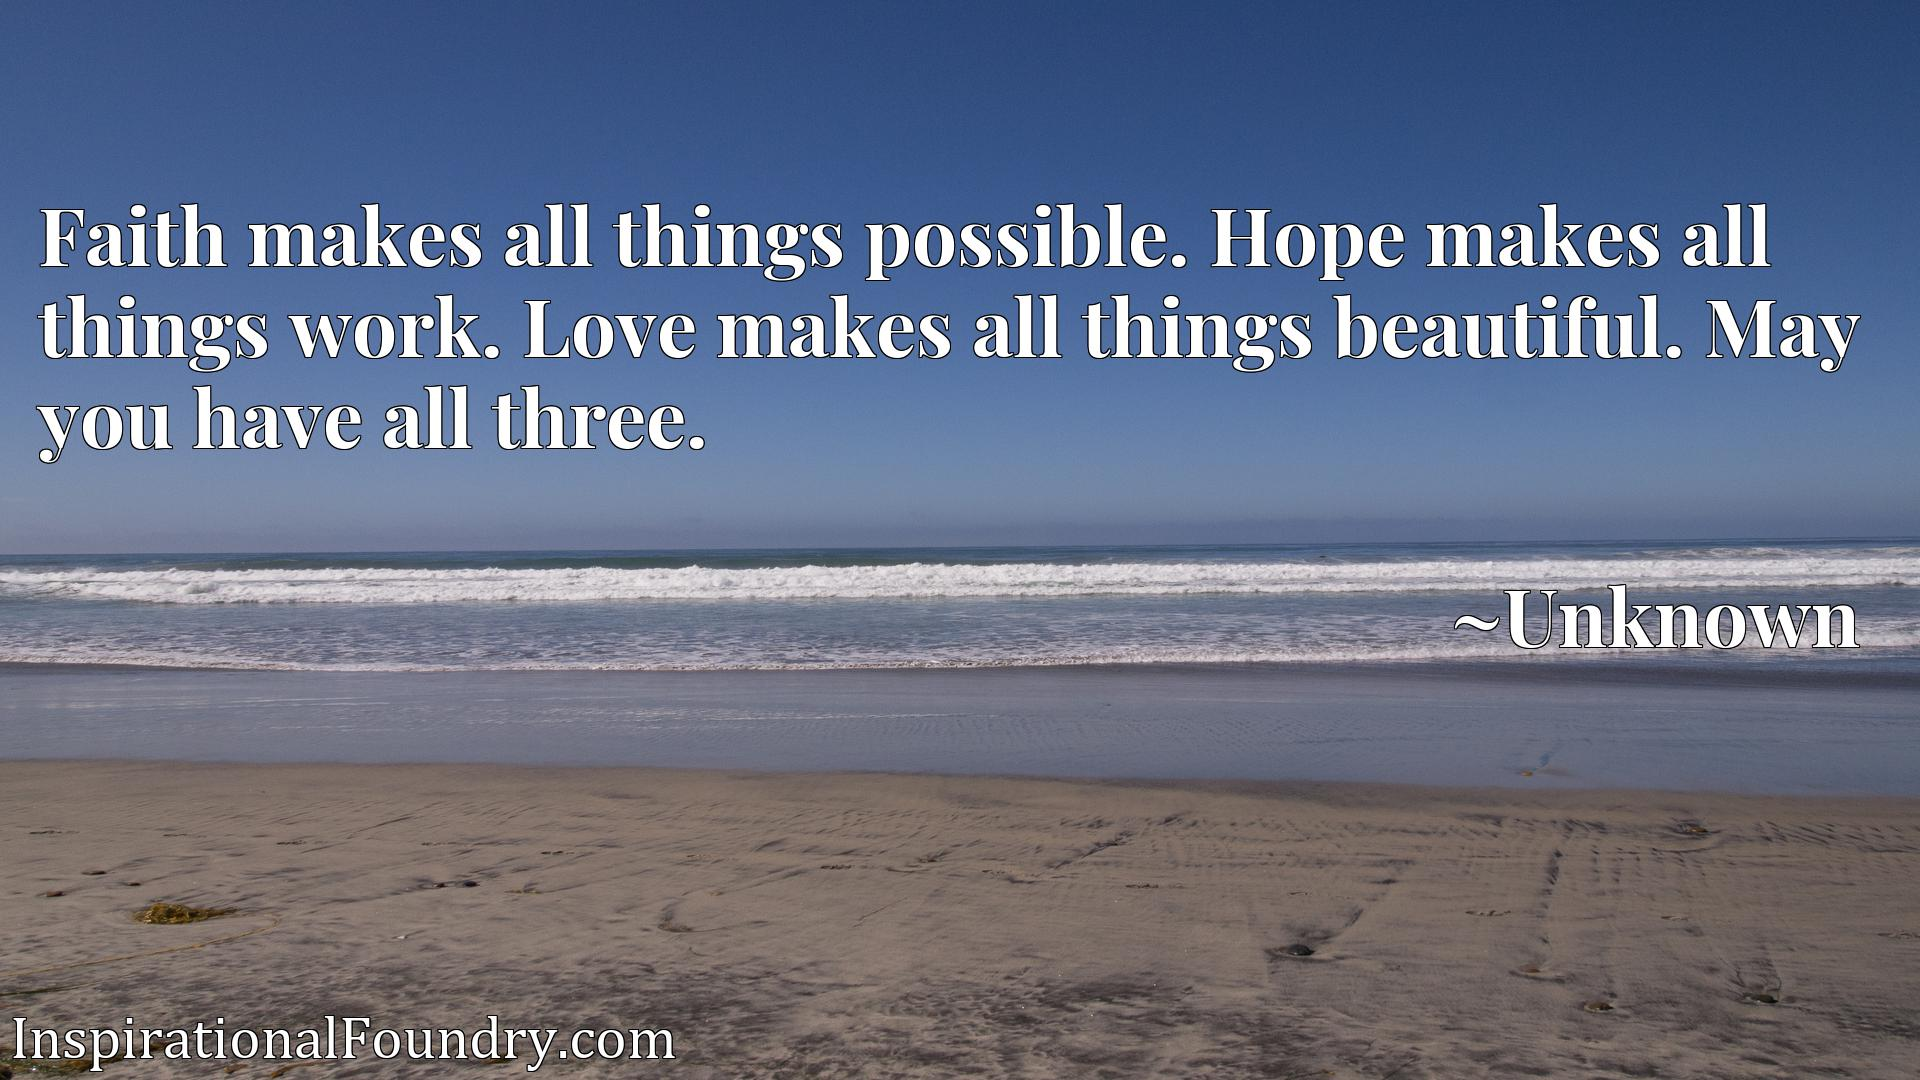 Faith makes all things possible. Hope makes all things work. Love makes all things beautiful. May you have all three.